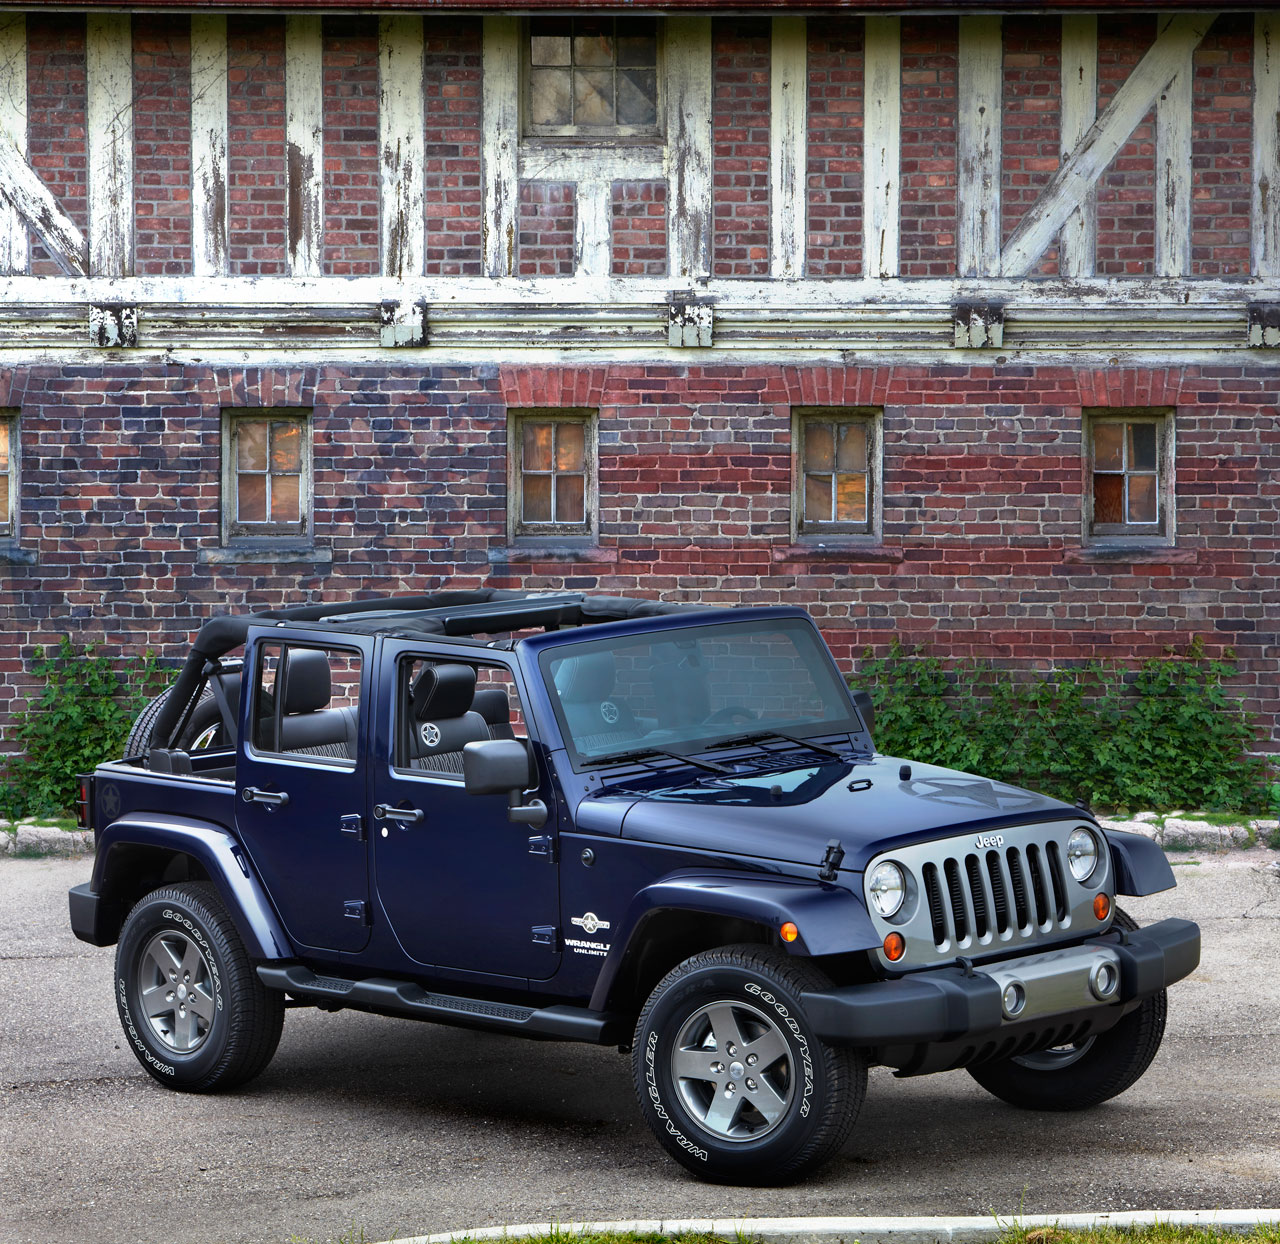 Jeep Wrangler Freedom Edition Arrives In Time For 4th Of